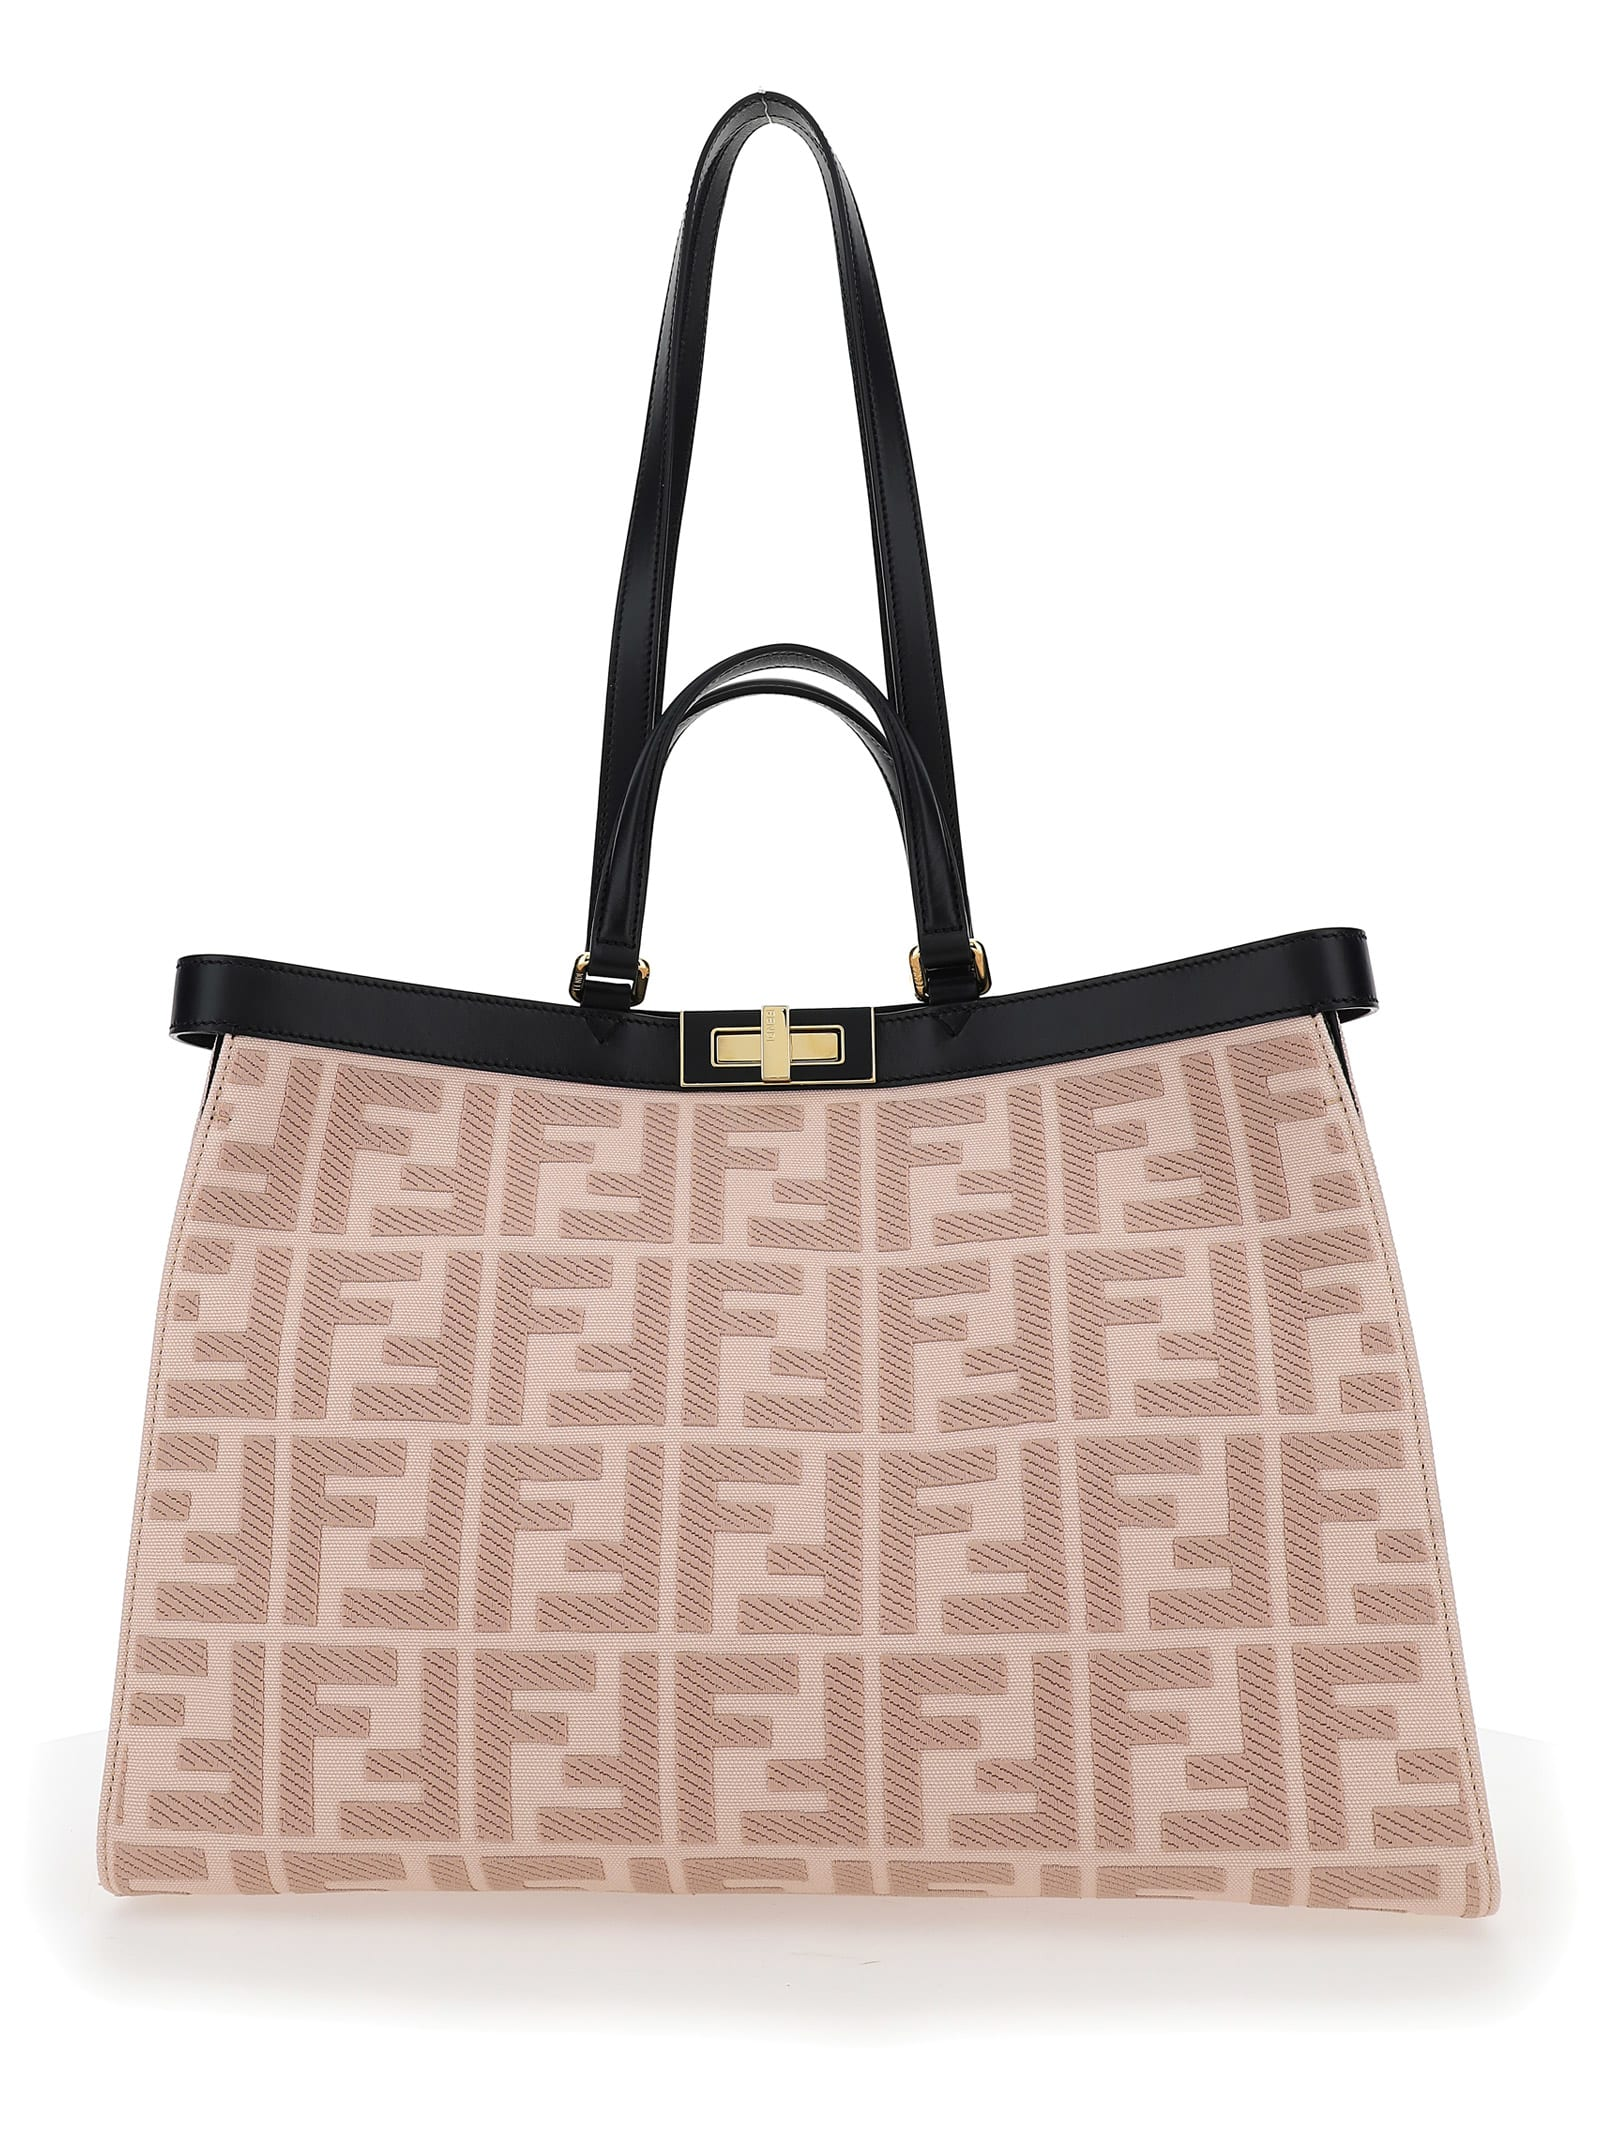 FENDI MEDIUM TOTE BAG